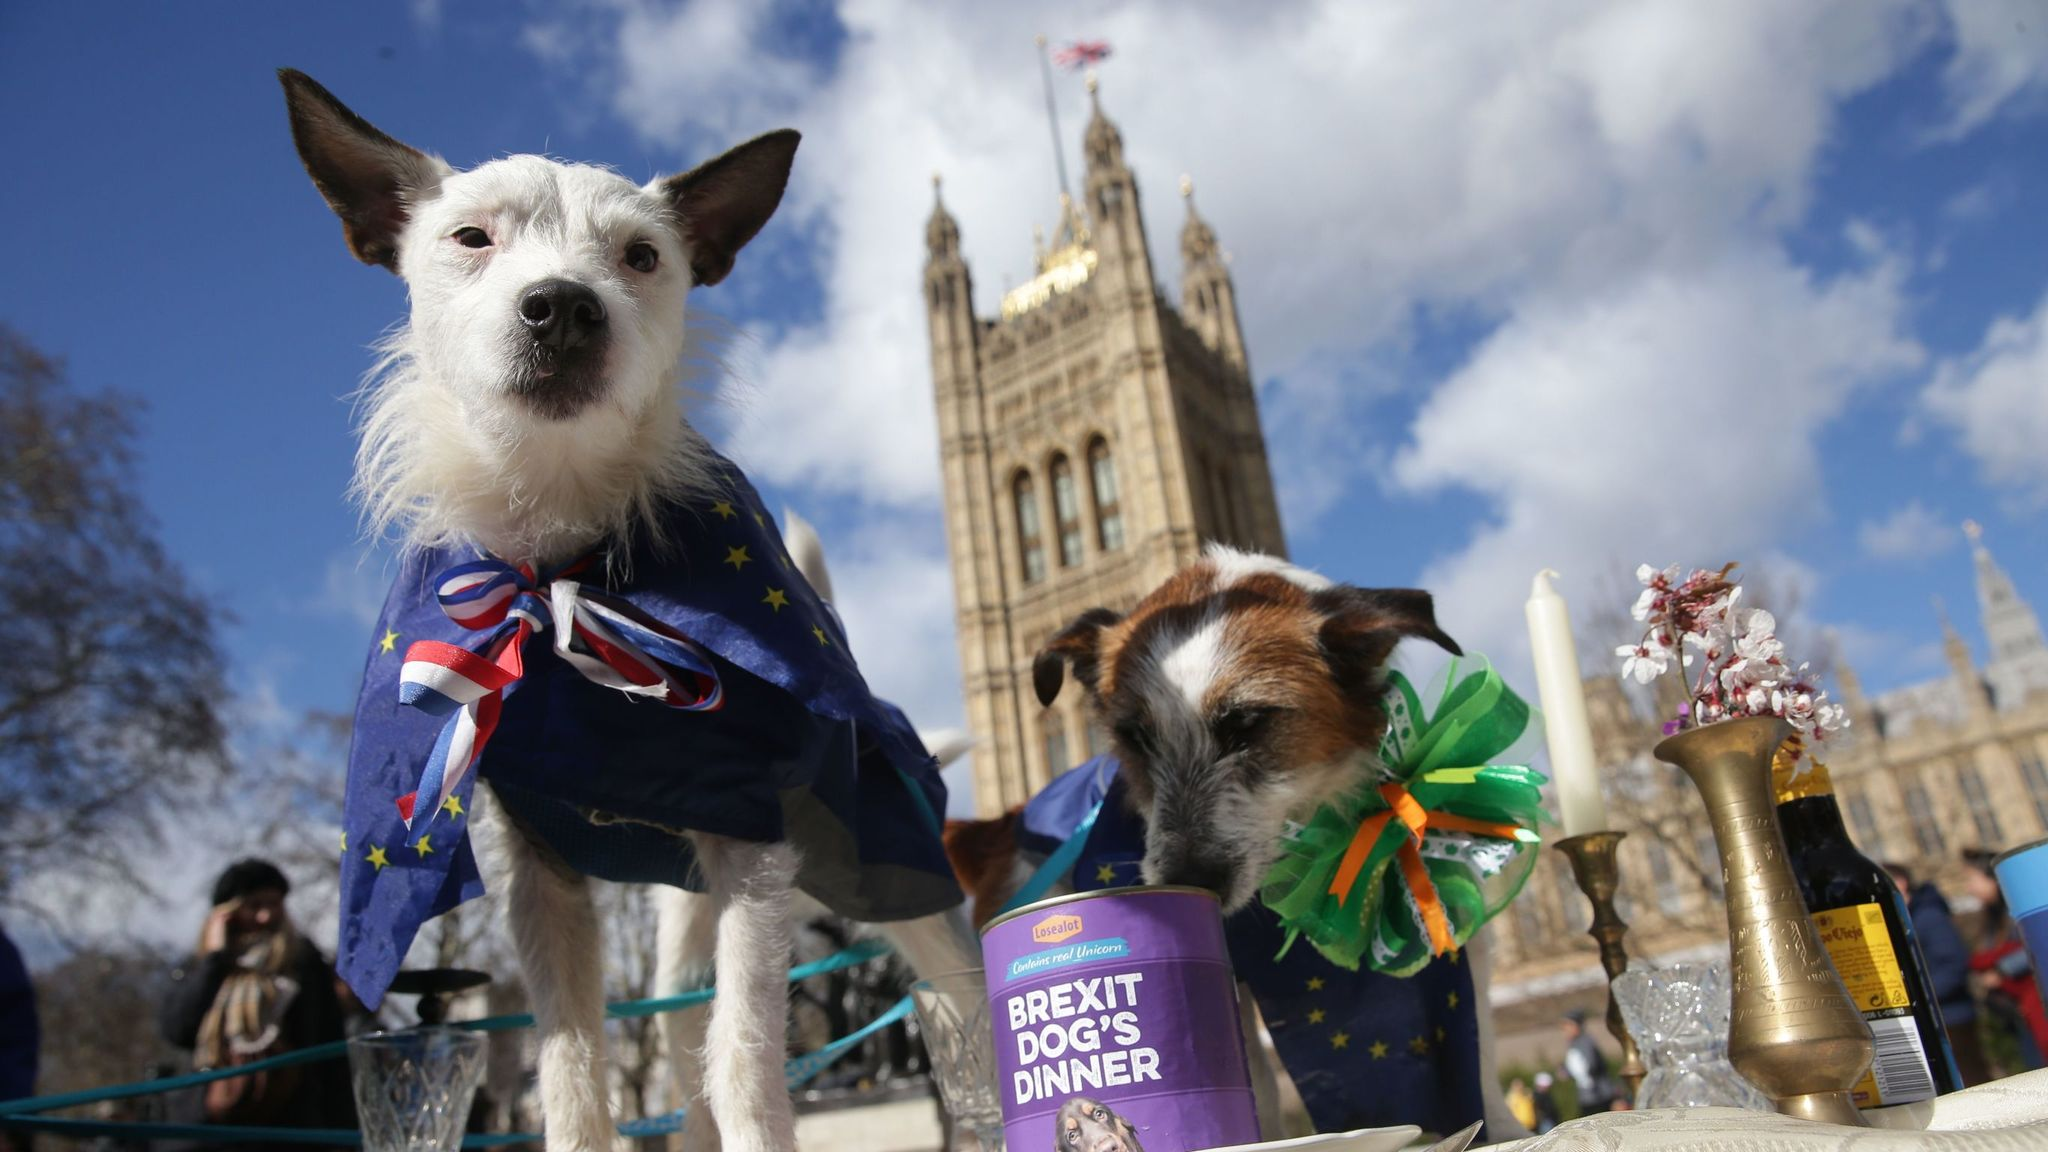 Dog owners hound Theresa May in call for Brexit referendum